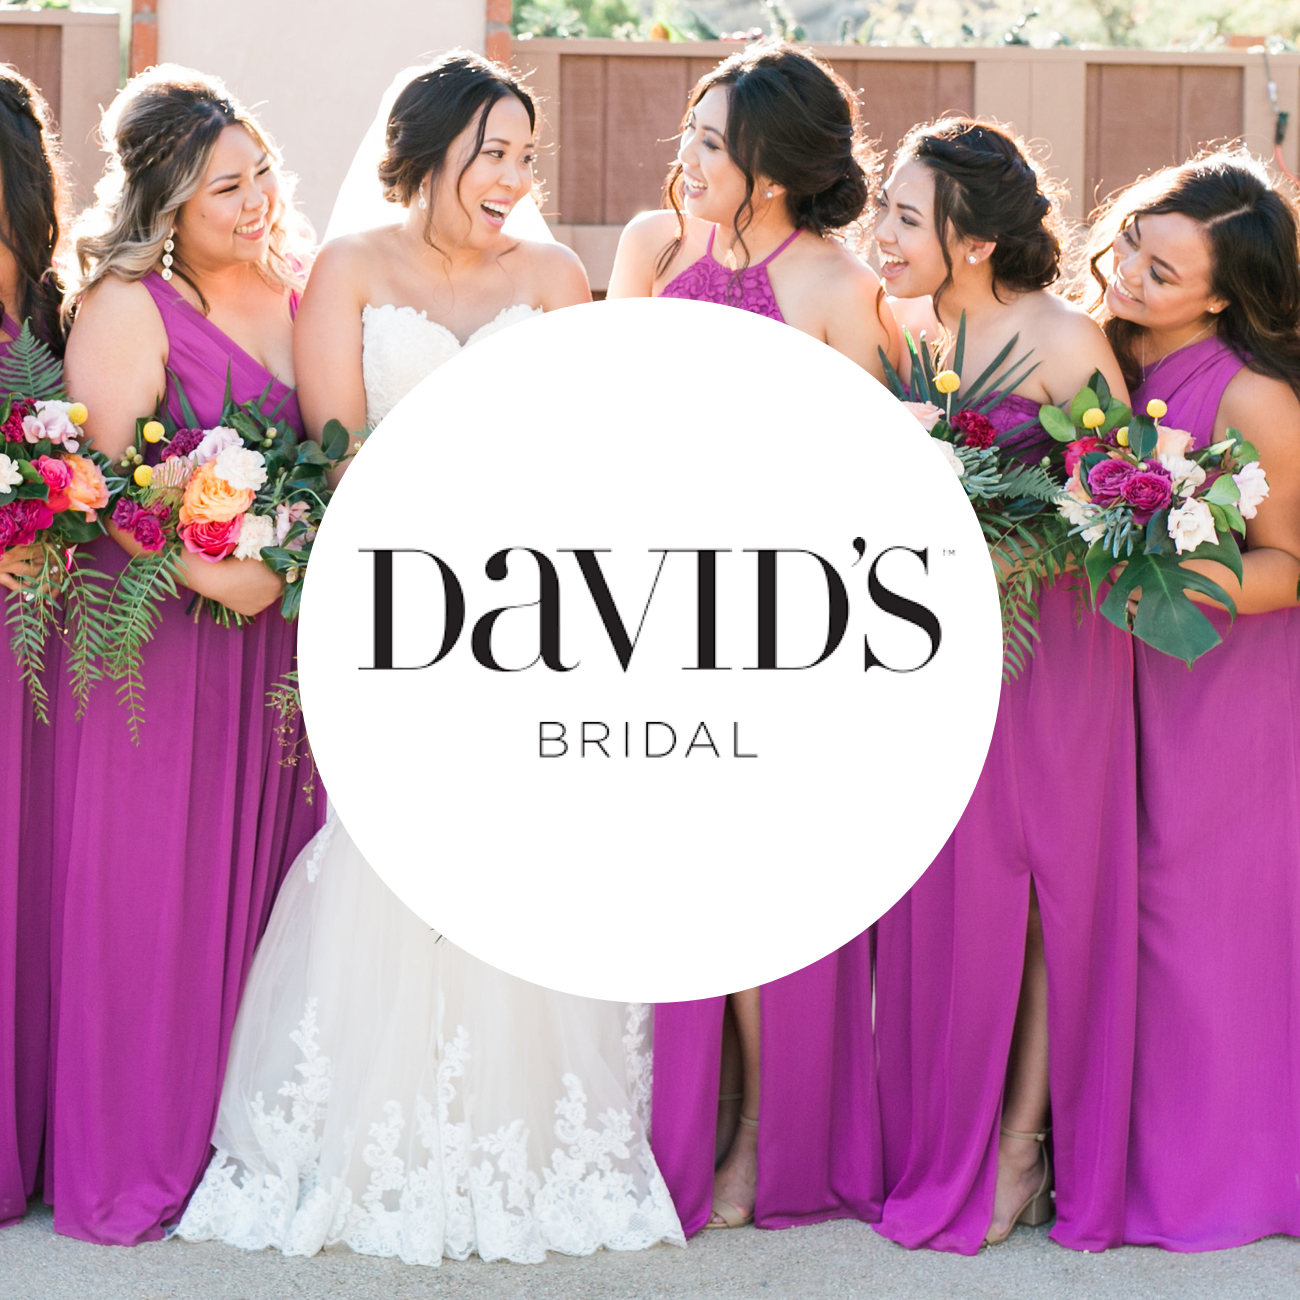 Sibyl_Sophia_Featured_David's Bridal.jpg